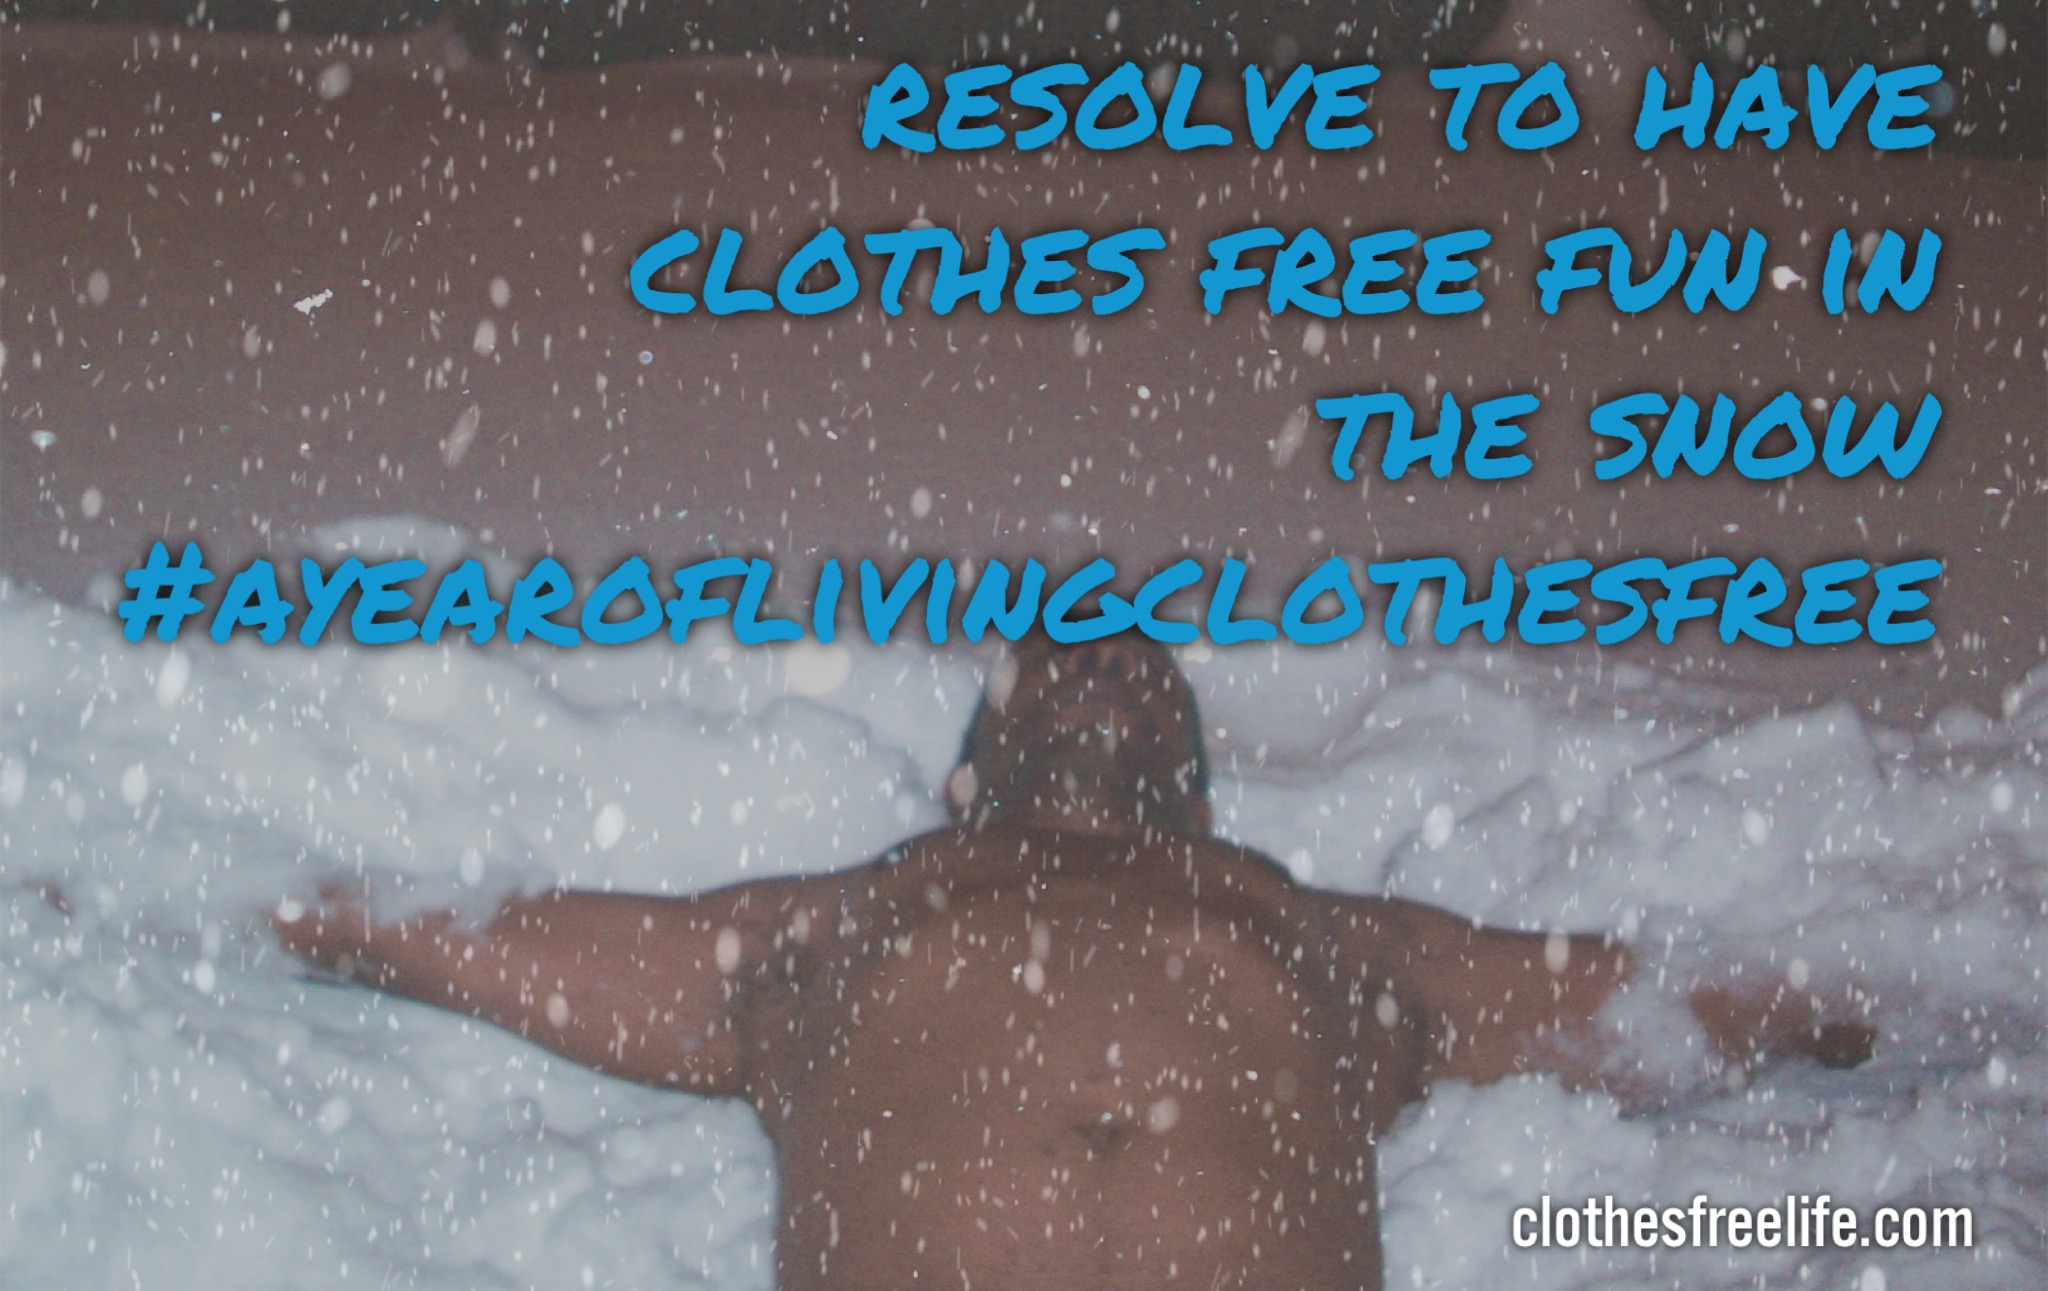 resolve to have clothes free fun in the snow